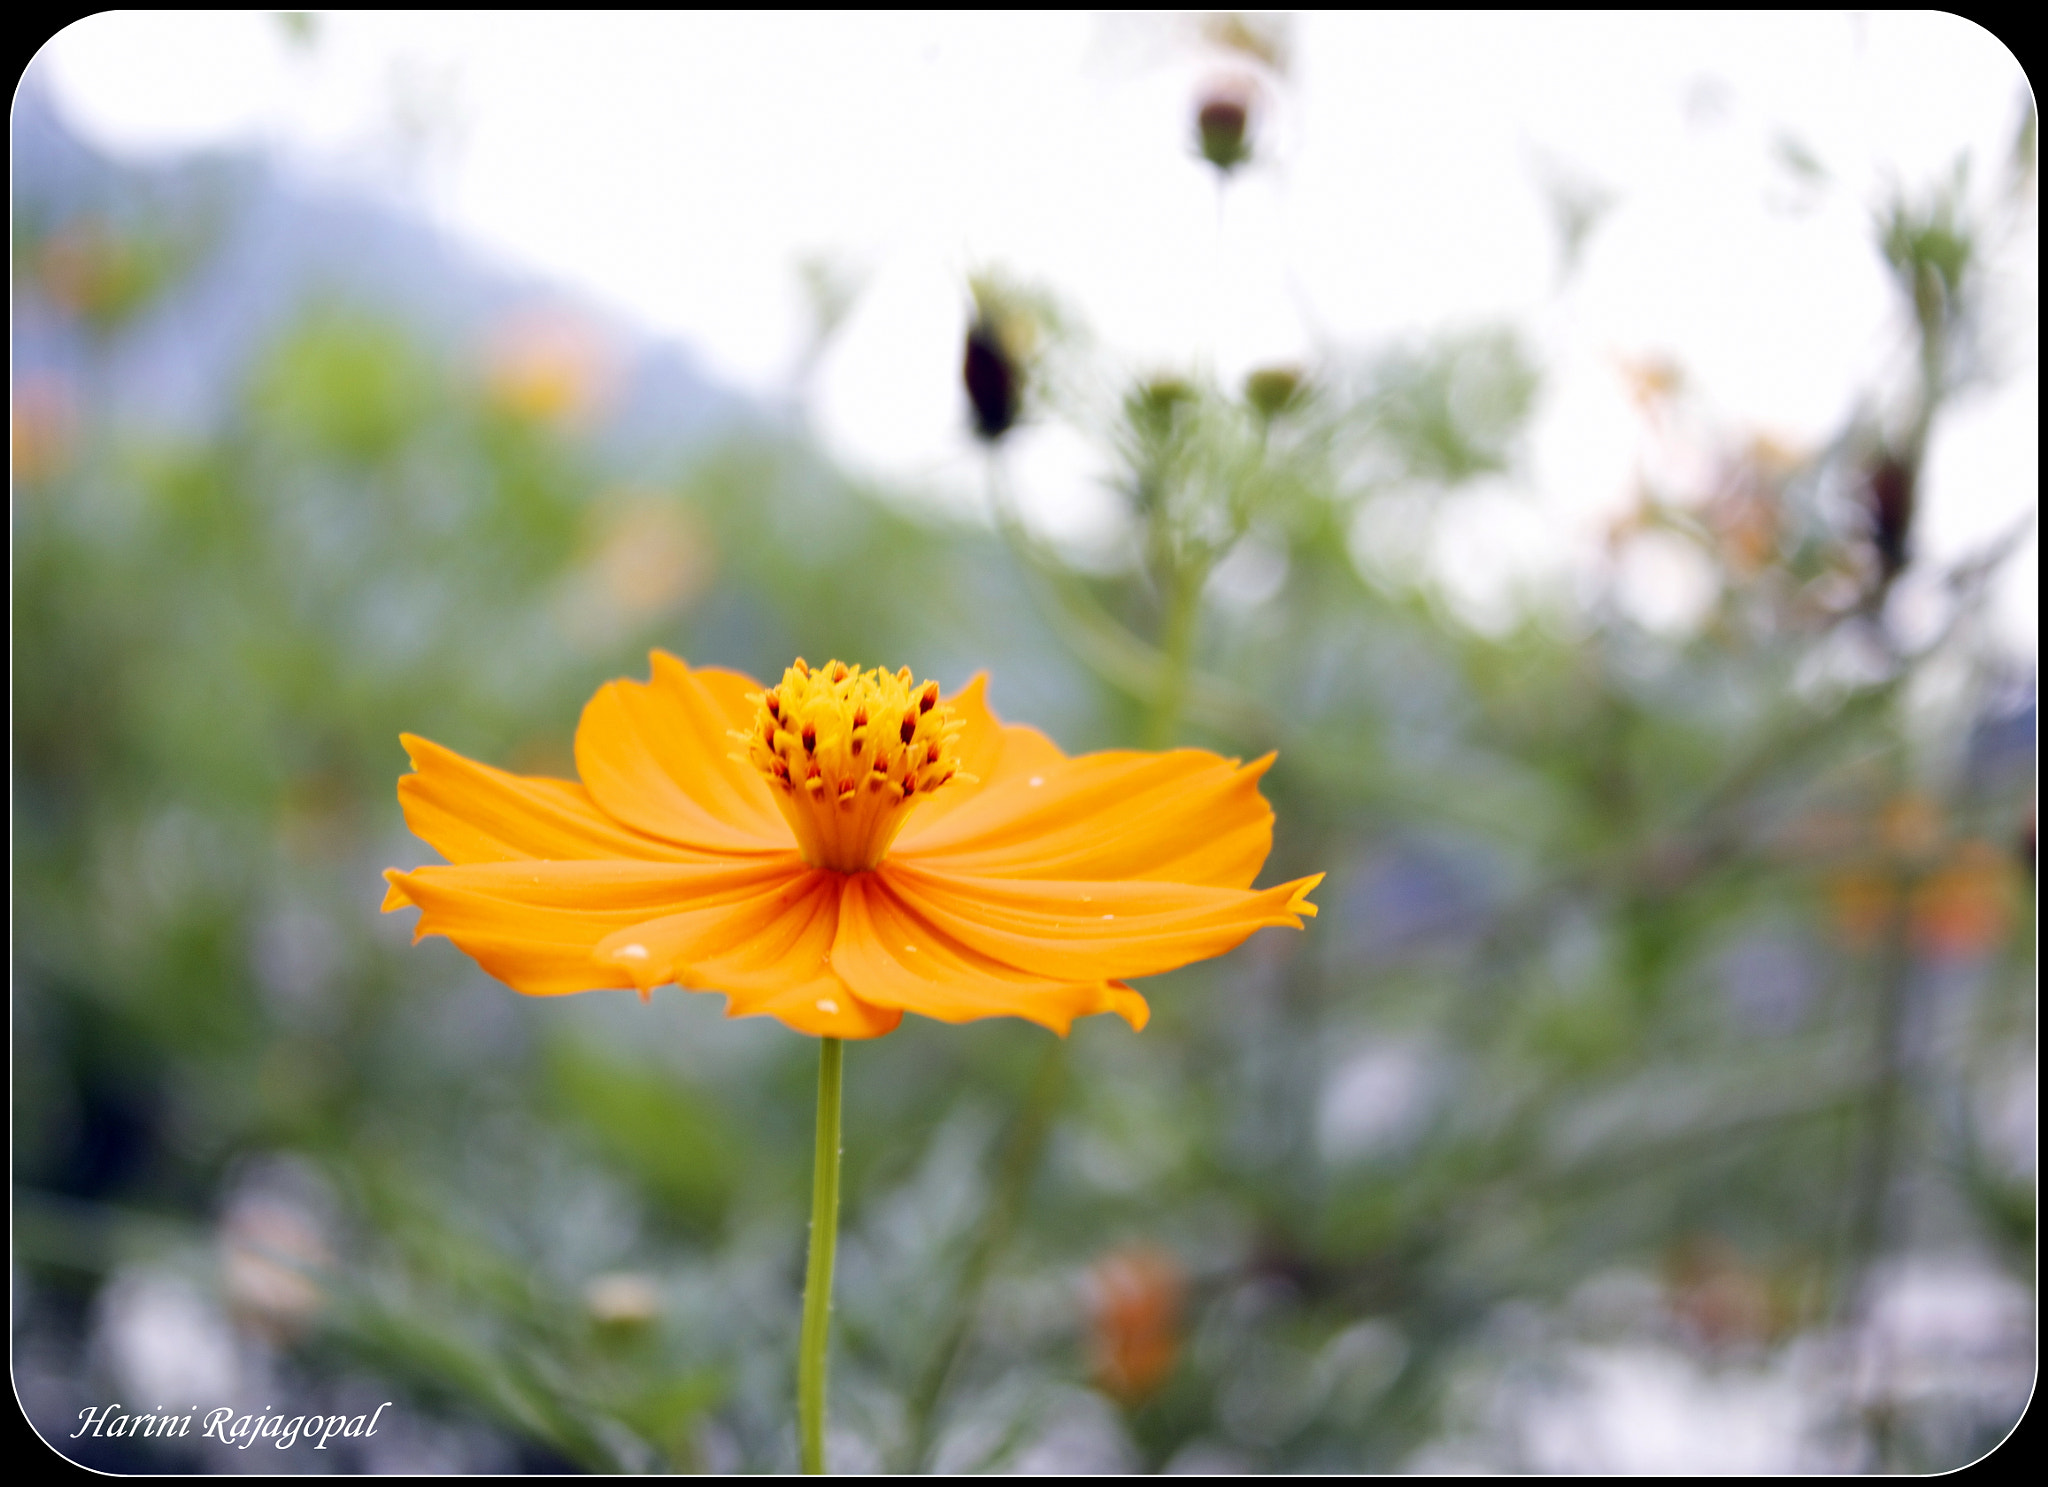 Photograph Untitled by HARINI RAJAGOPAL on 500px